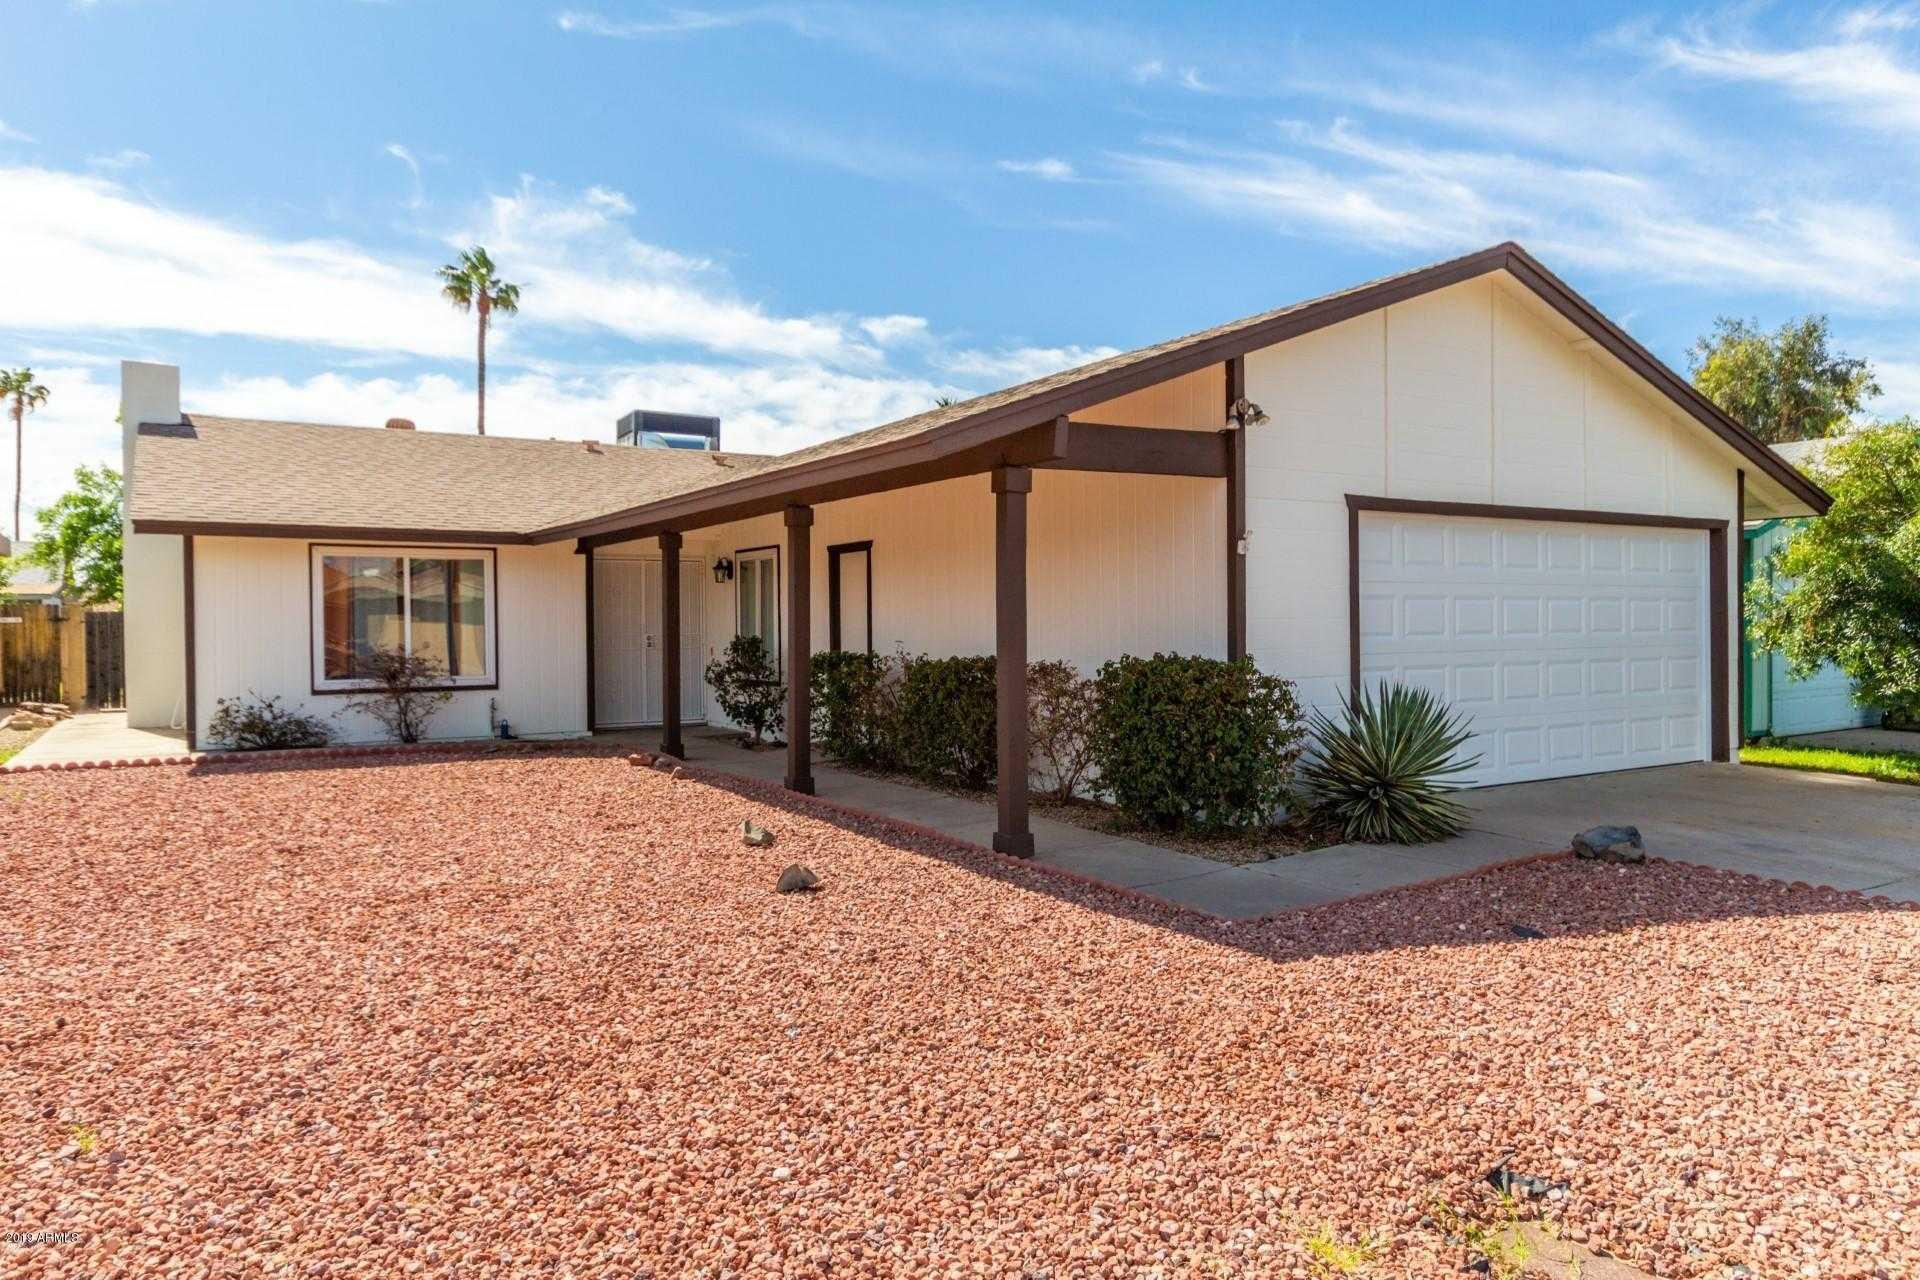 $229,000 - 4Br/2Ba - Home for Sale in New World Glendale, Glendale